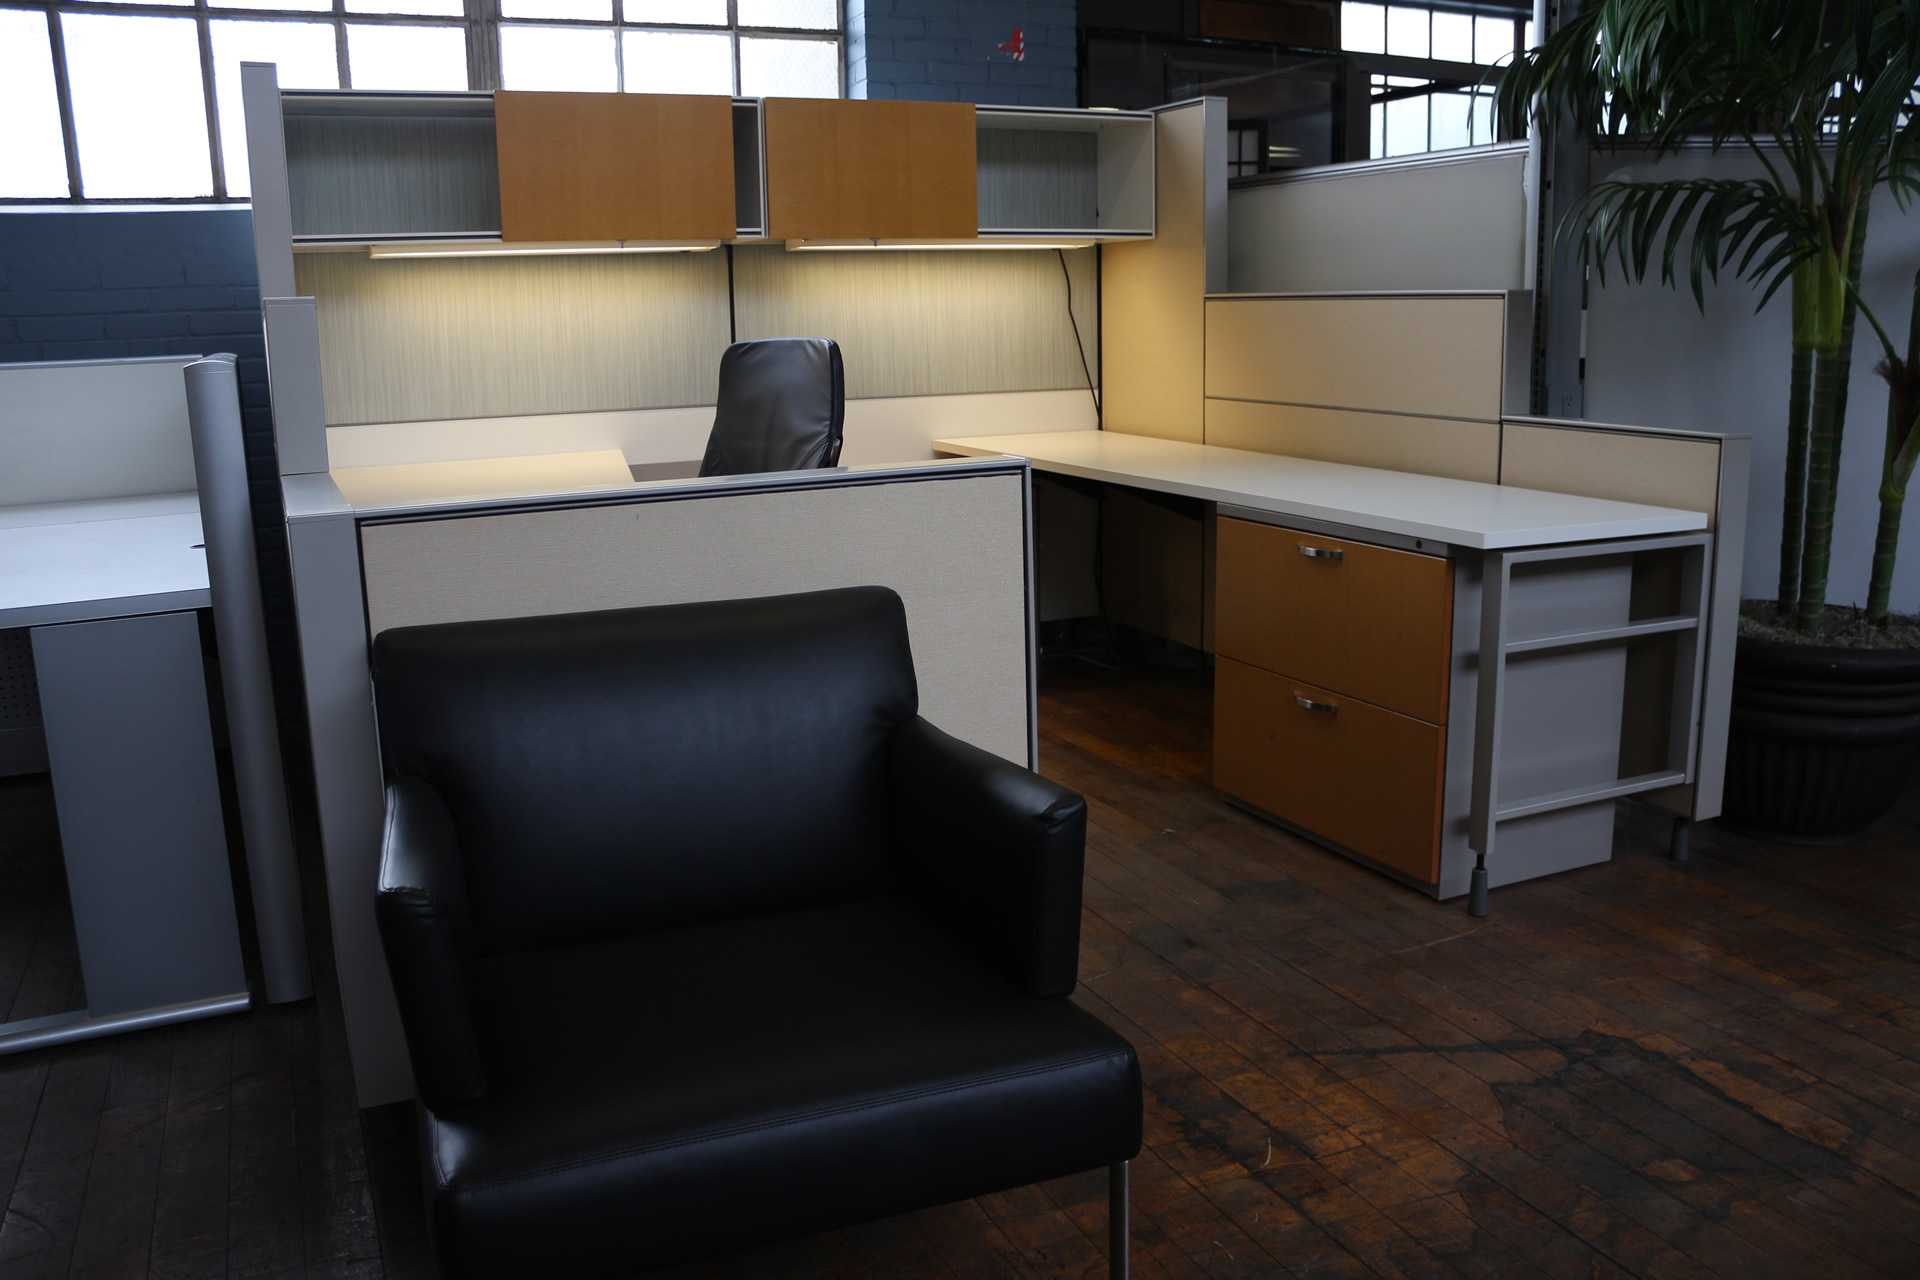 peartreeofficefurniture_peartreeofficefurniture_img_7558.jpg